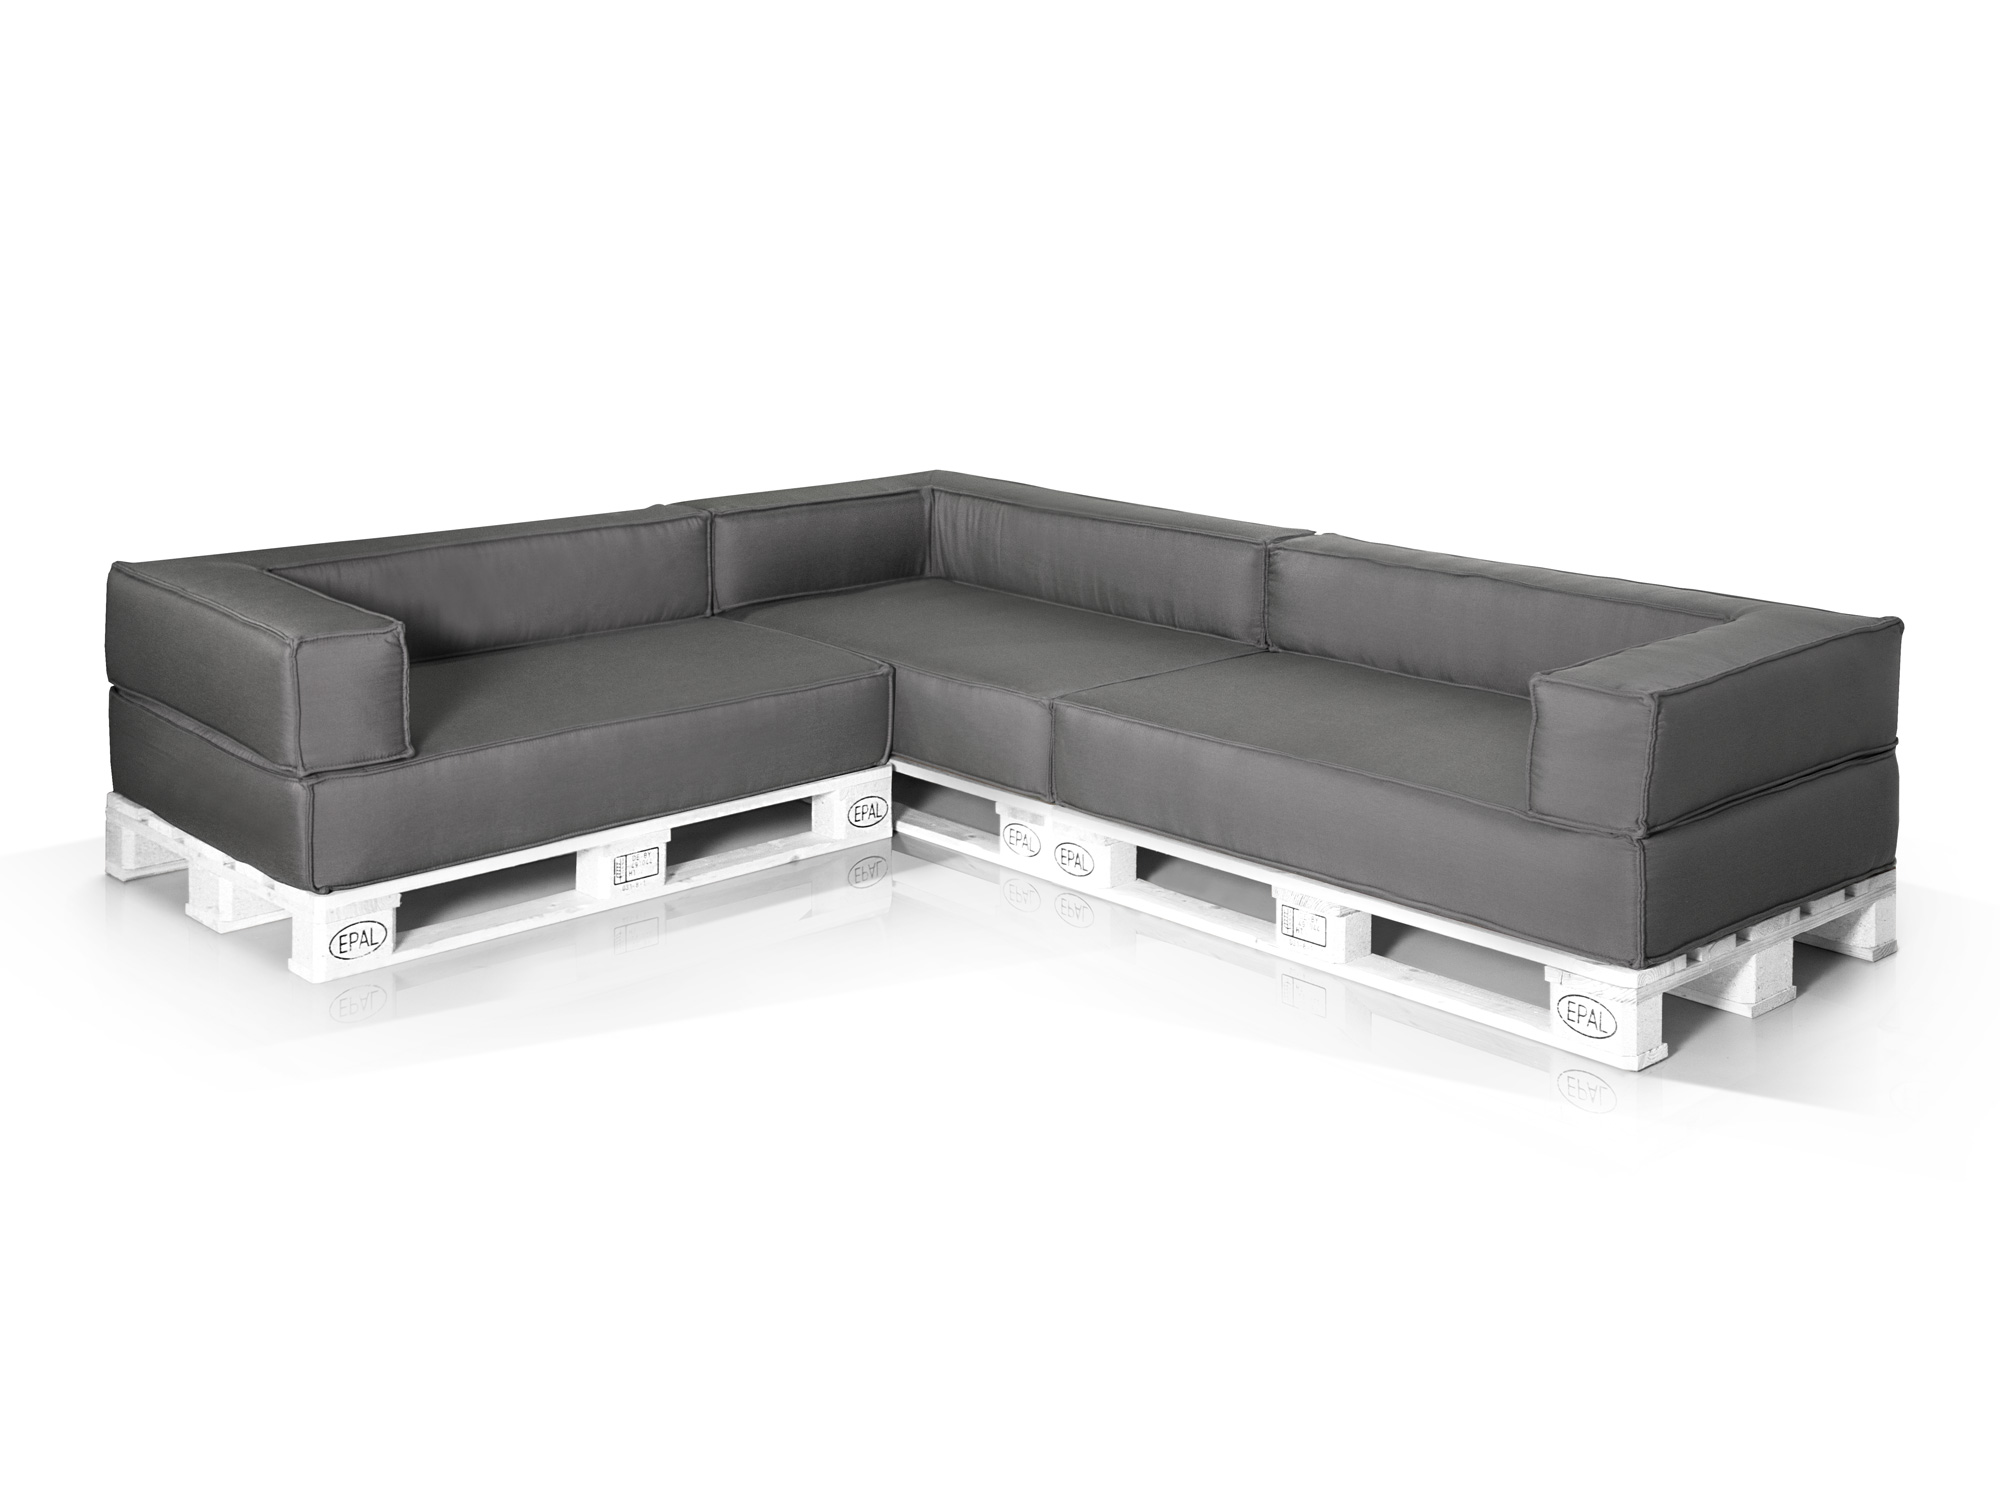 outdoor paletti ecksofa europaletten weiss mit. Black Bedroom Furniture Sets. Home Design Ideas